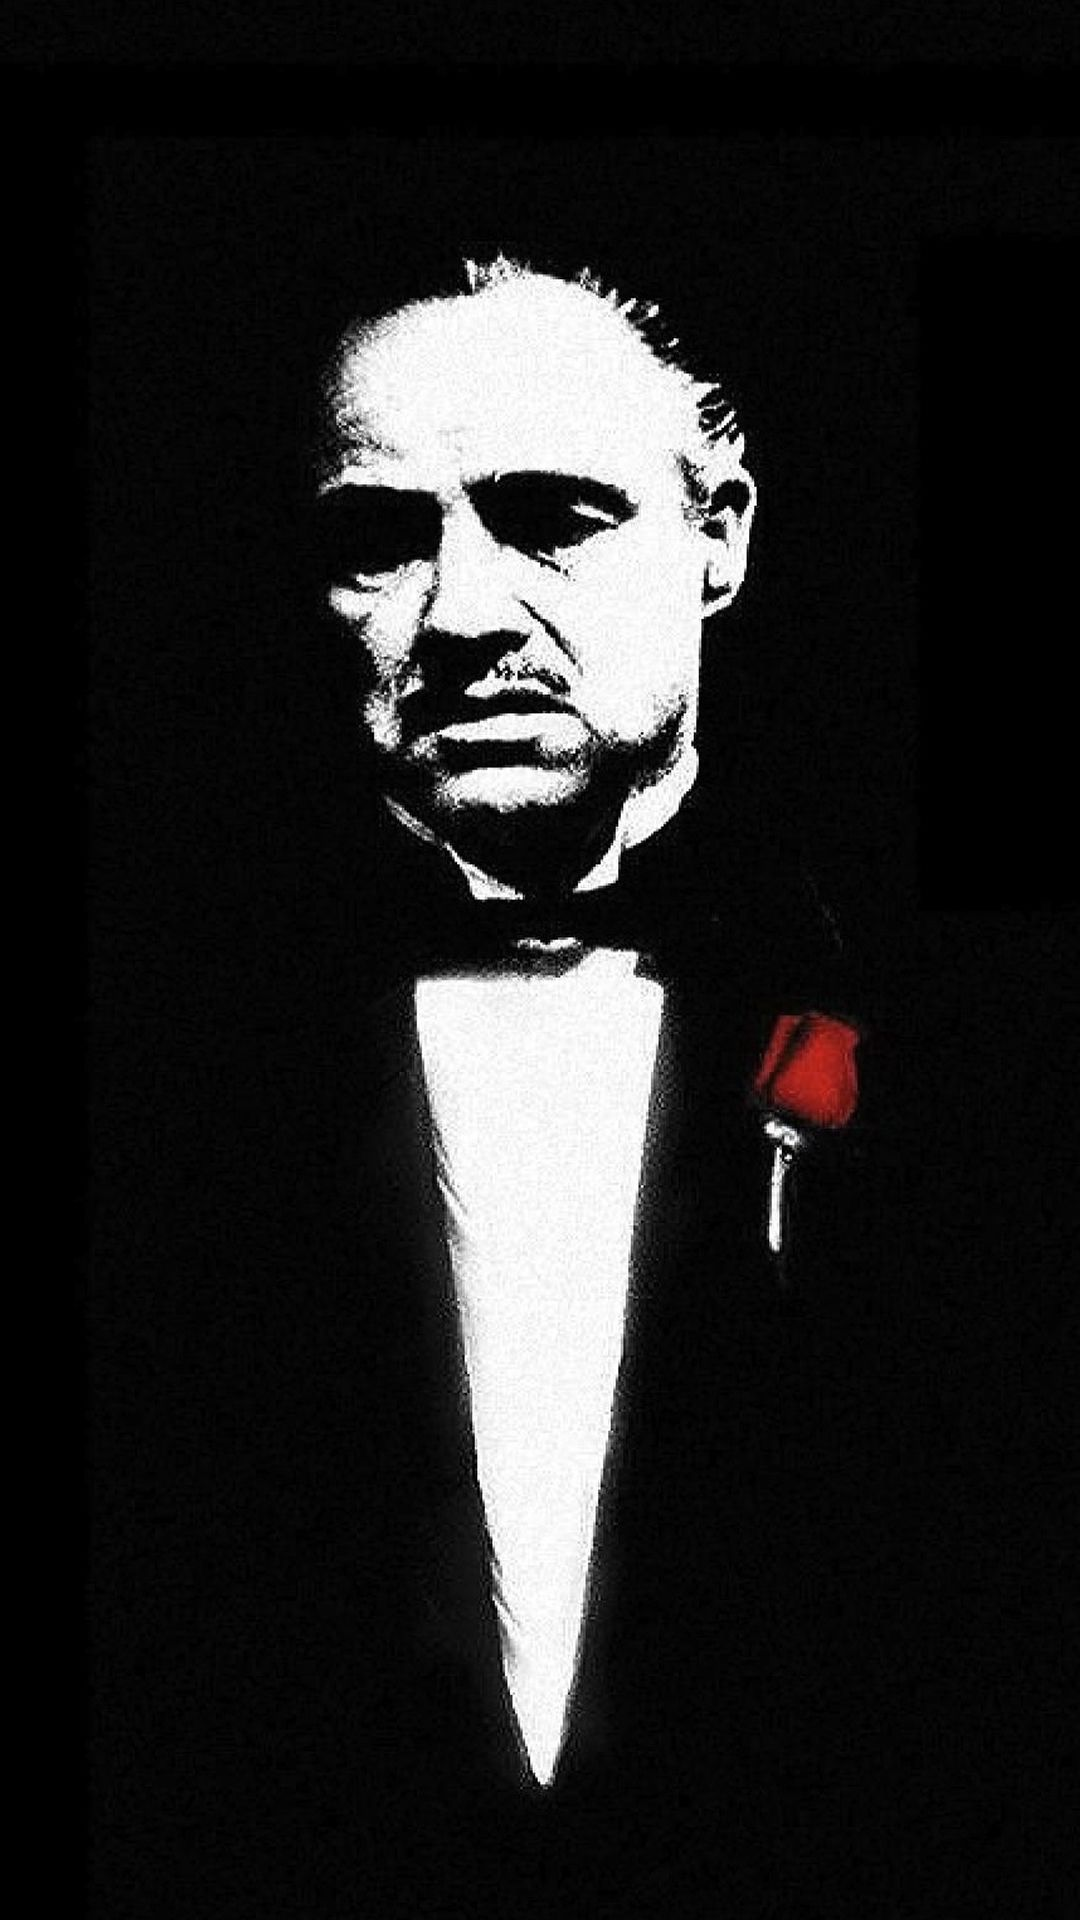 The Godfather Iphone 8 Wallpapers Posteres De Filmes Cartazes De Cinema Papeis De Parede Para Iphone